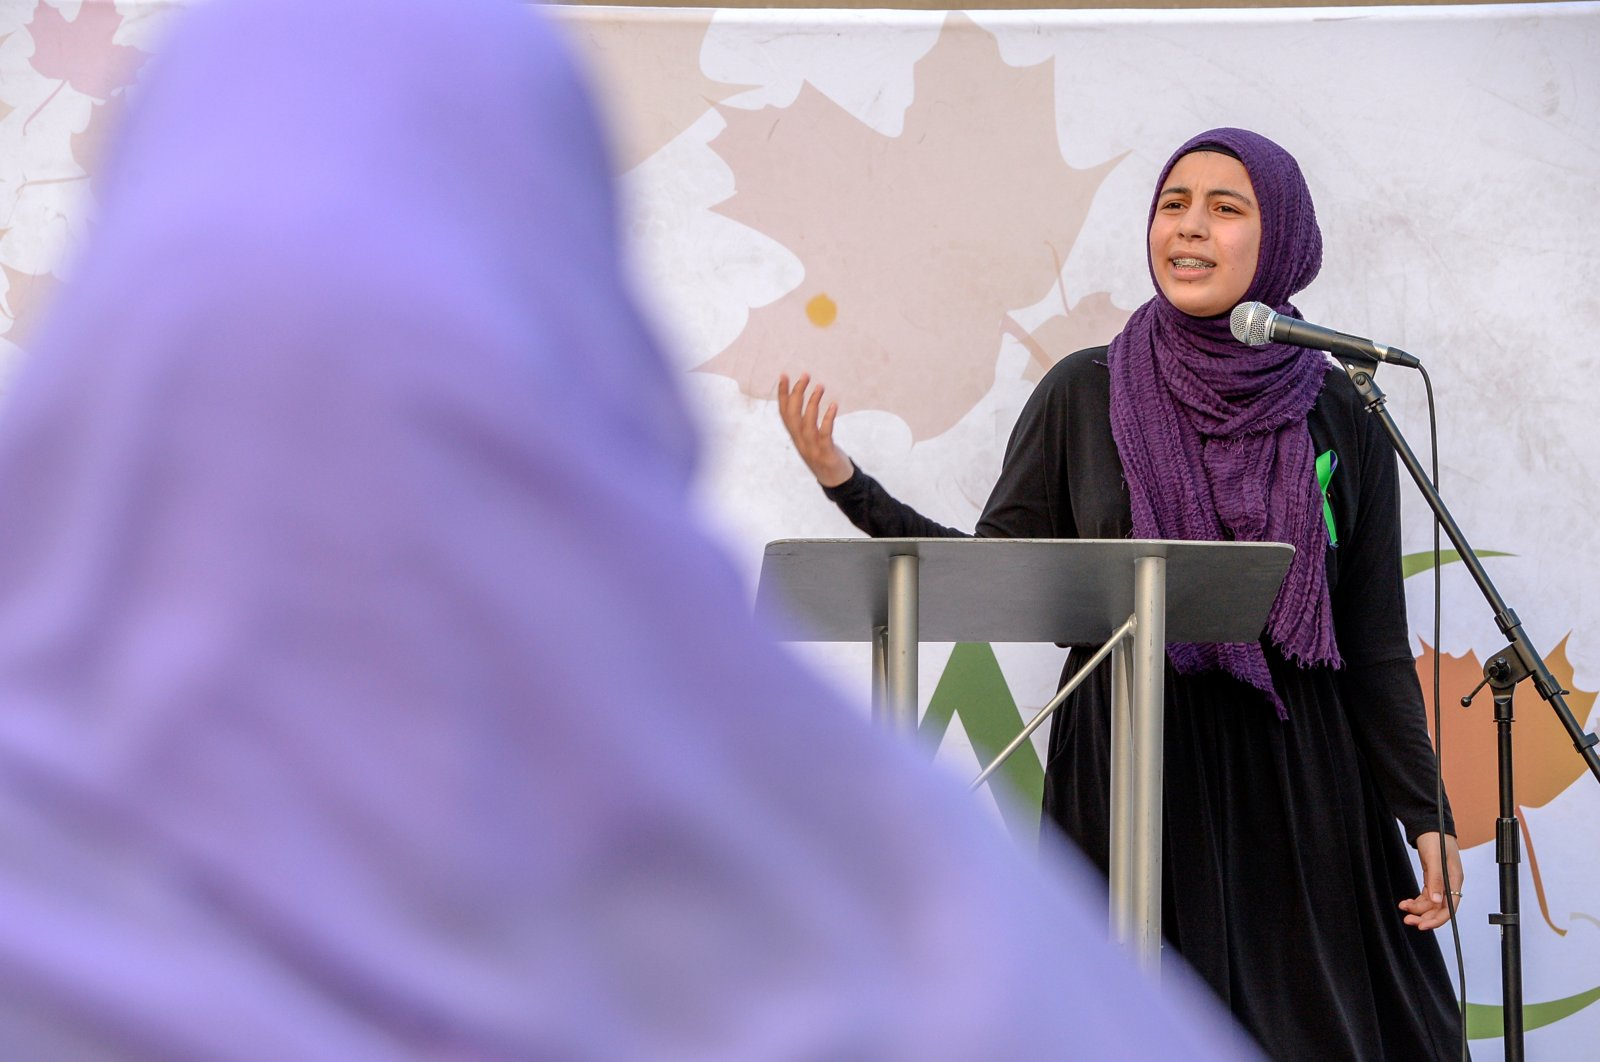 """Ayah Elmallah recites one of her poems titled """"Terror Is"""" at a rally to highlight Islamophobia, sponsored by the Muslim Association of Canada, including the June 6 in London, Ontario attack which killed a Muslim family in what police describe as a hate-motivated crime, in Toronto, Ontario, Canada, June 18, 2021. (Reuters Photo)"""